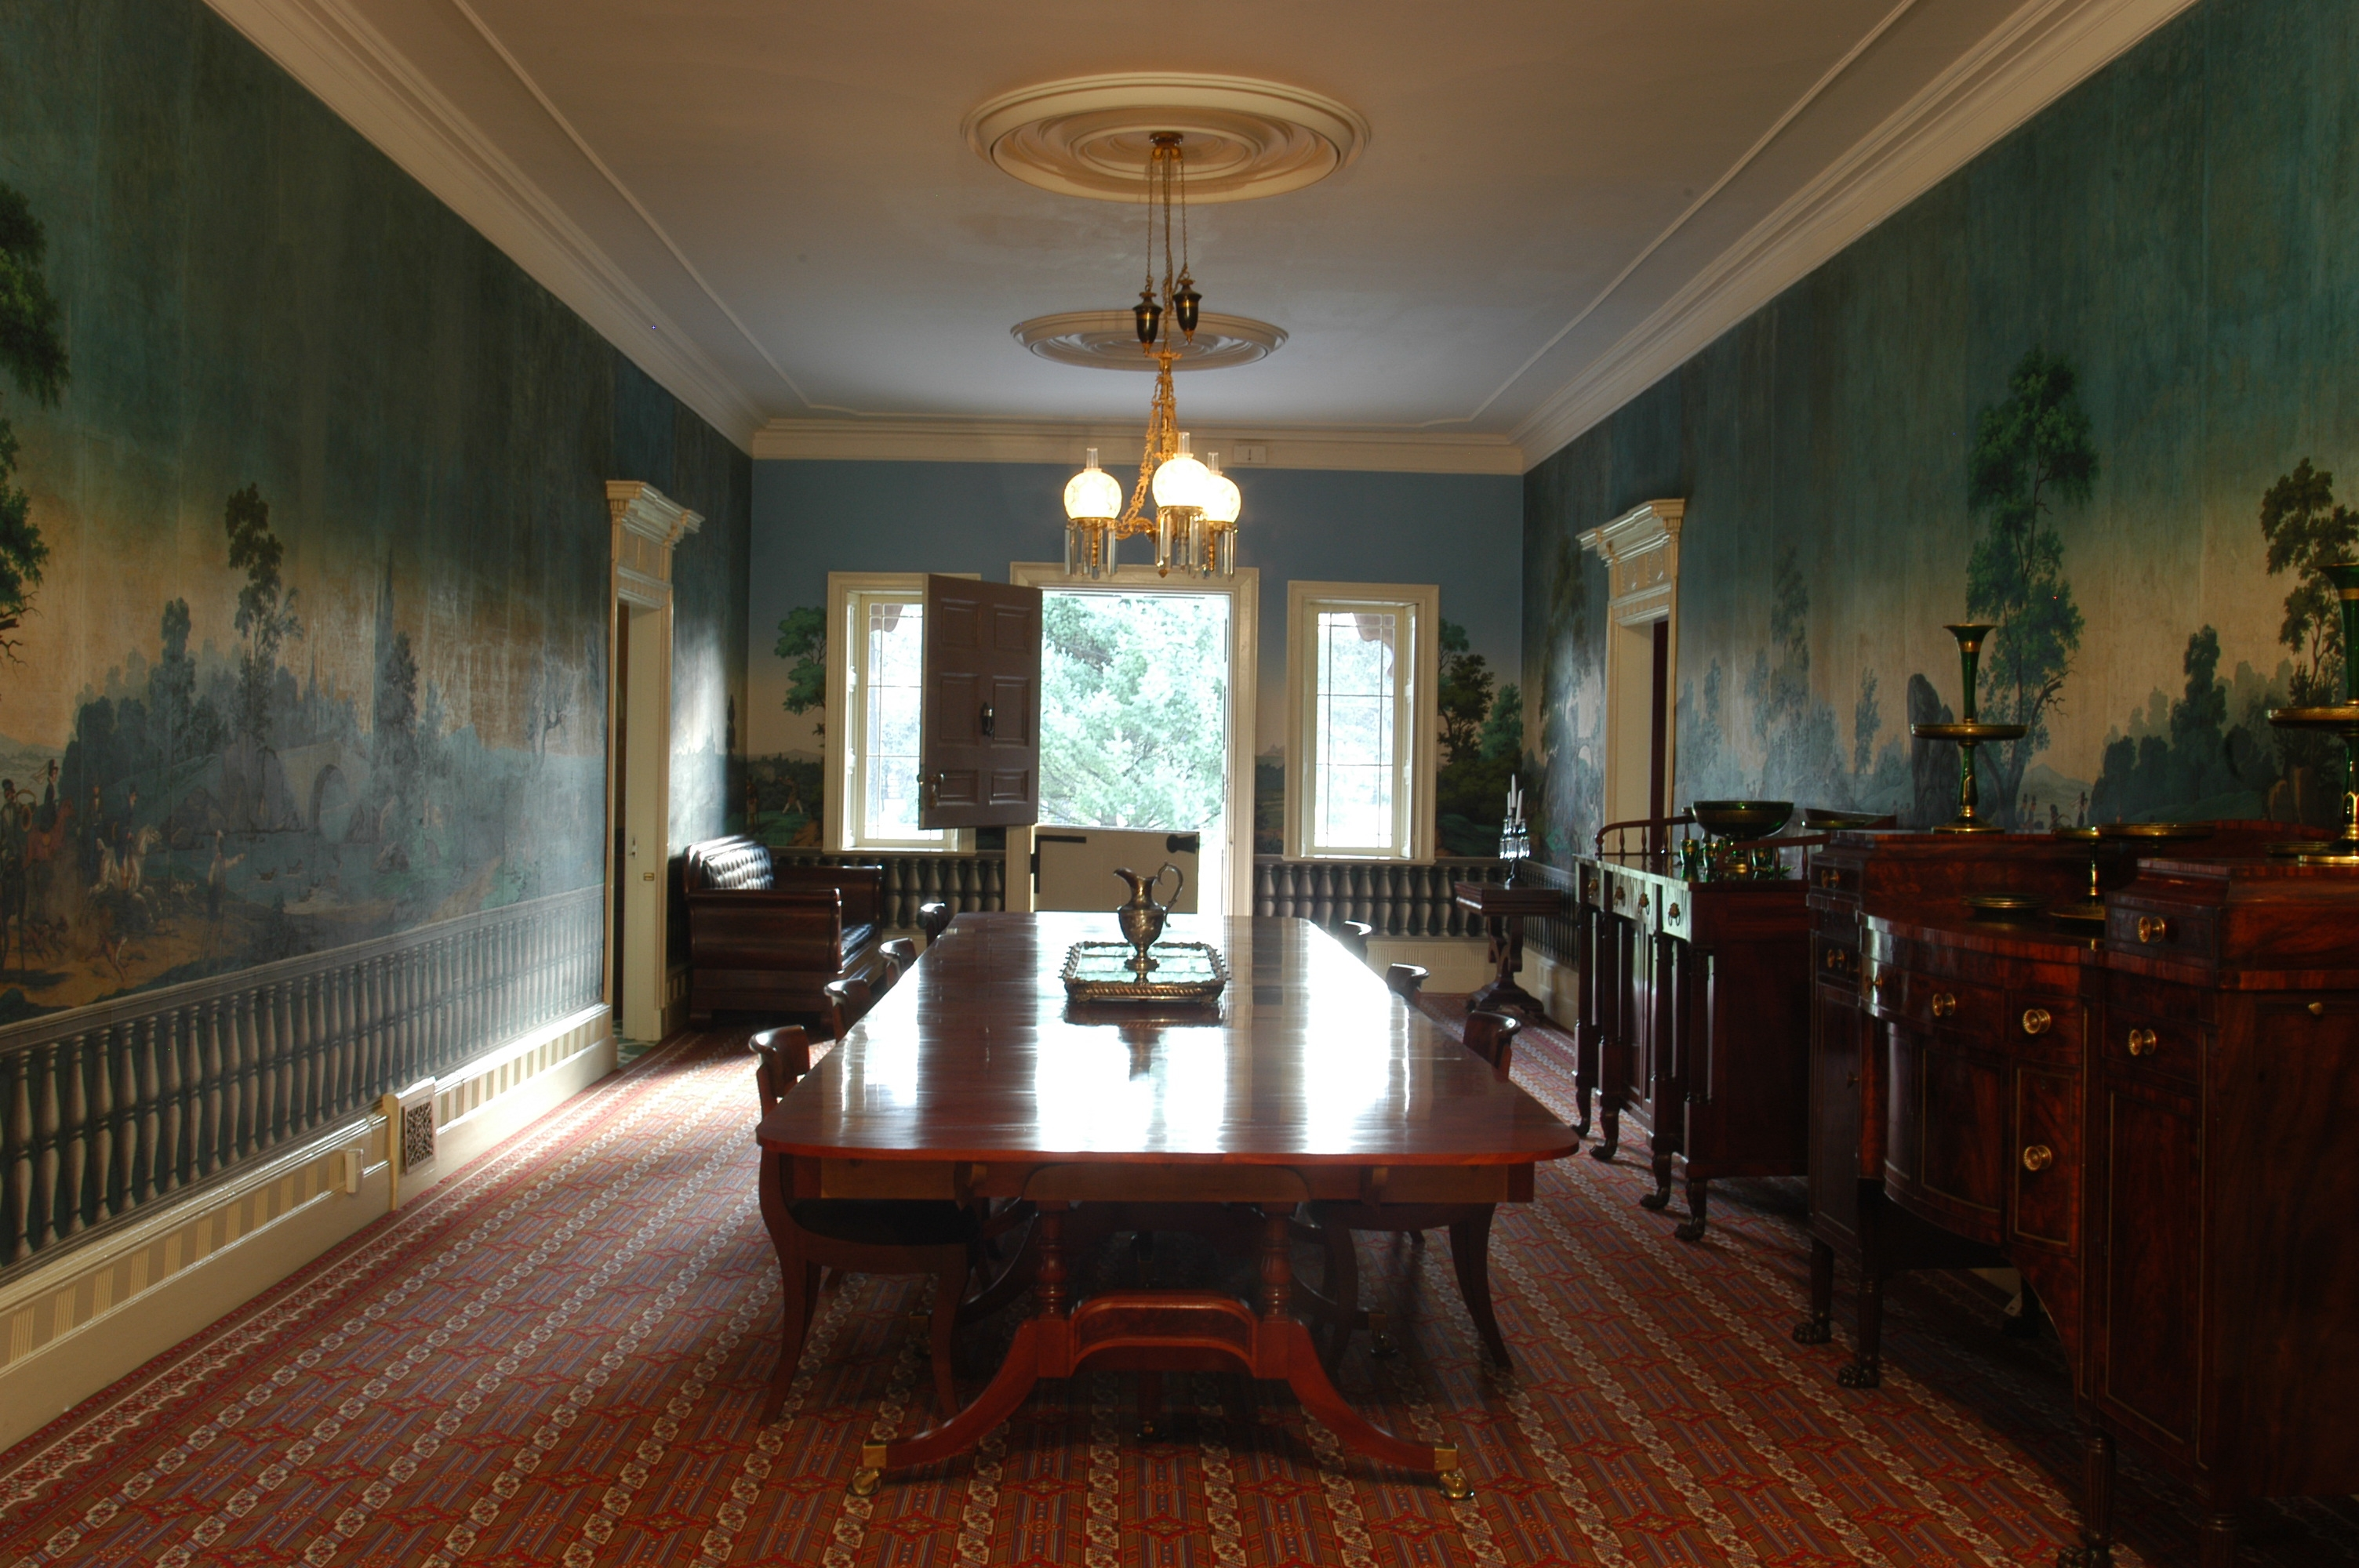 Van Buren practiced politics in the main hall of his home for more than twenty years.  He would lobby, cajole, argue, discuss and debate with other politicians while entertaining them in  the elegant room.